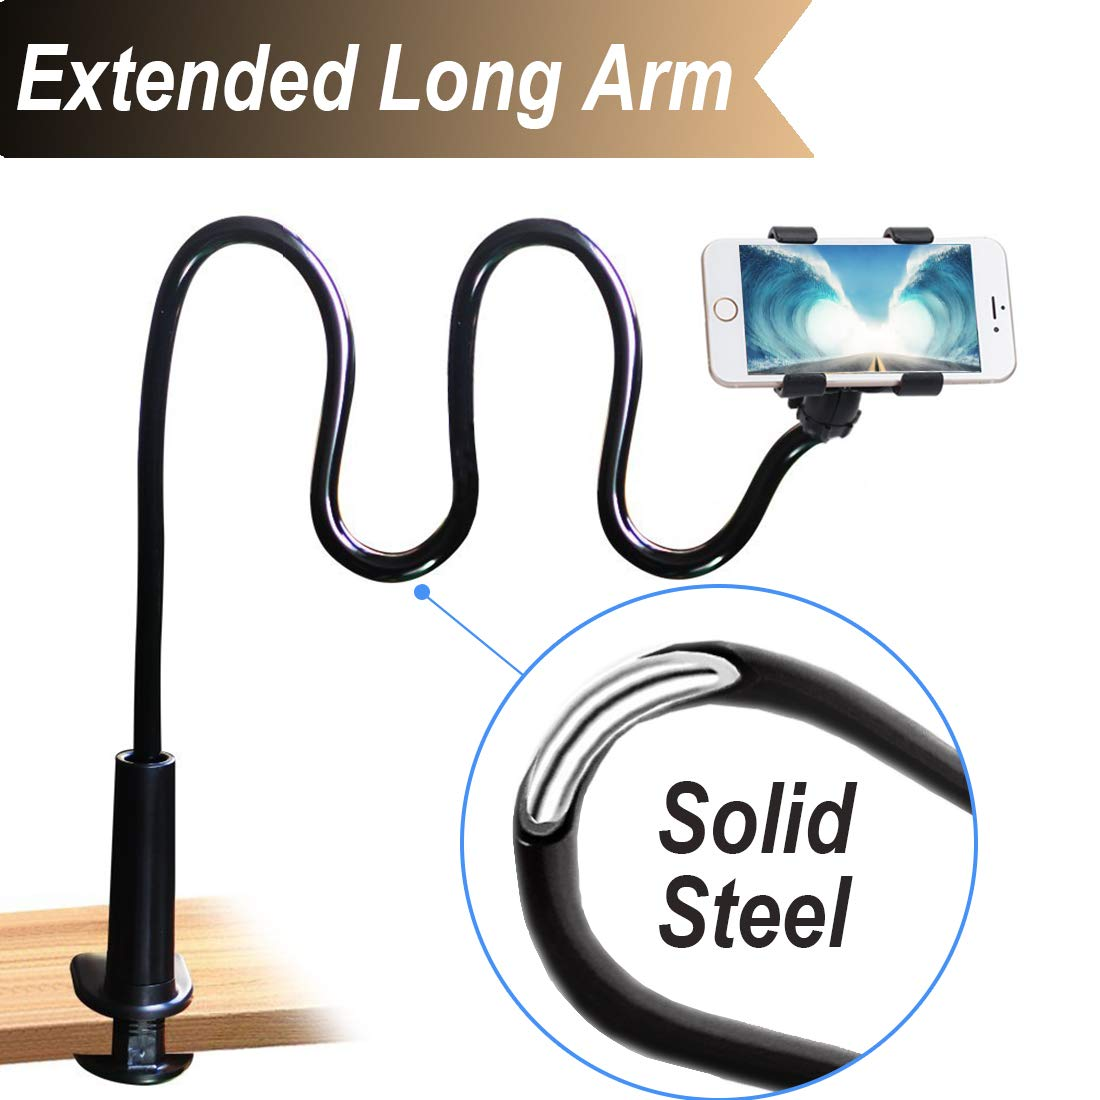 Cell Phone Clip On Stand Holder with Grip Flexible Long Arm Gooseneck Bracket Mount Clamp Compatible with iPhone X/8/7/6/6S Plus Samsung S8/S7, Used for Bed, Desktop, Black by Naham